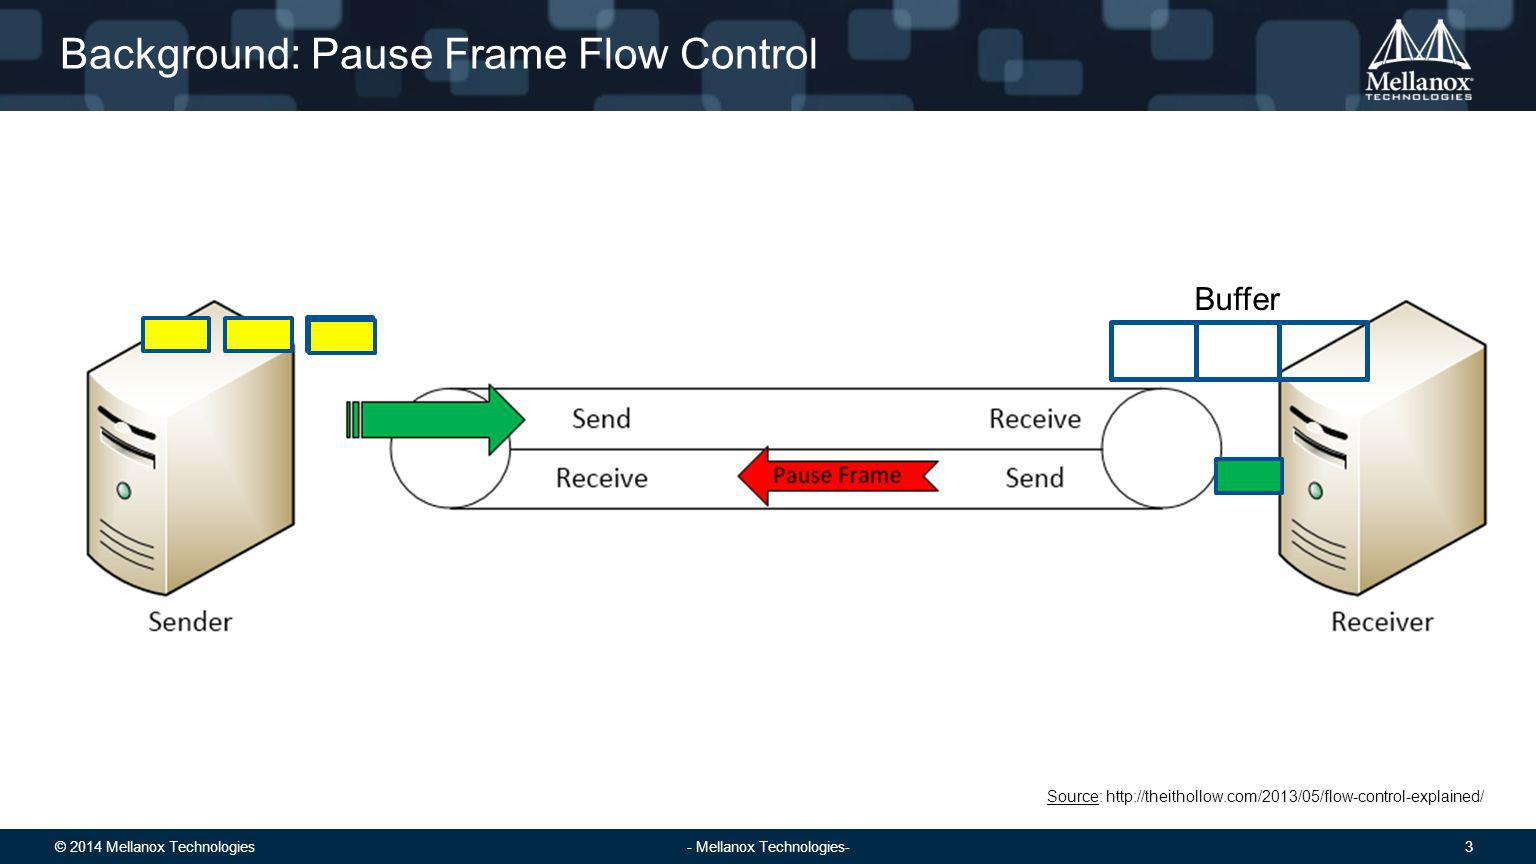 © 2014 Mellanox Technologies 4 - Mellanox Technologies- Background: Incast with Pause Frame Flow Control Source: http://theithollow.com/2013/05/flow-control-explained/ 33% 100%